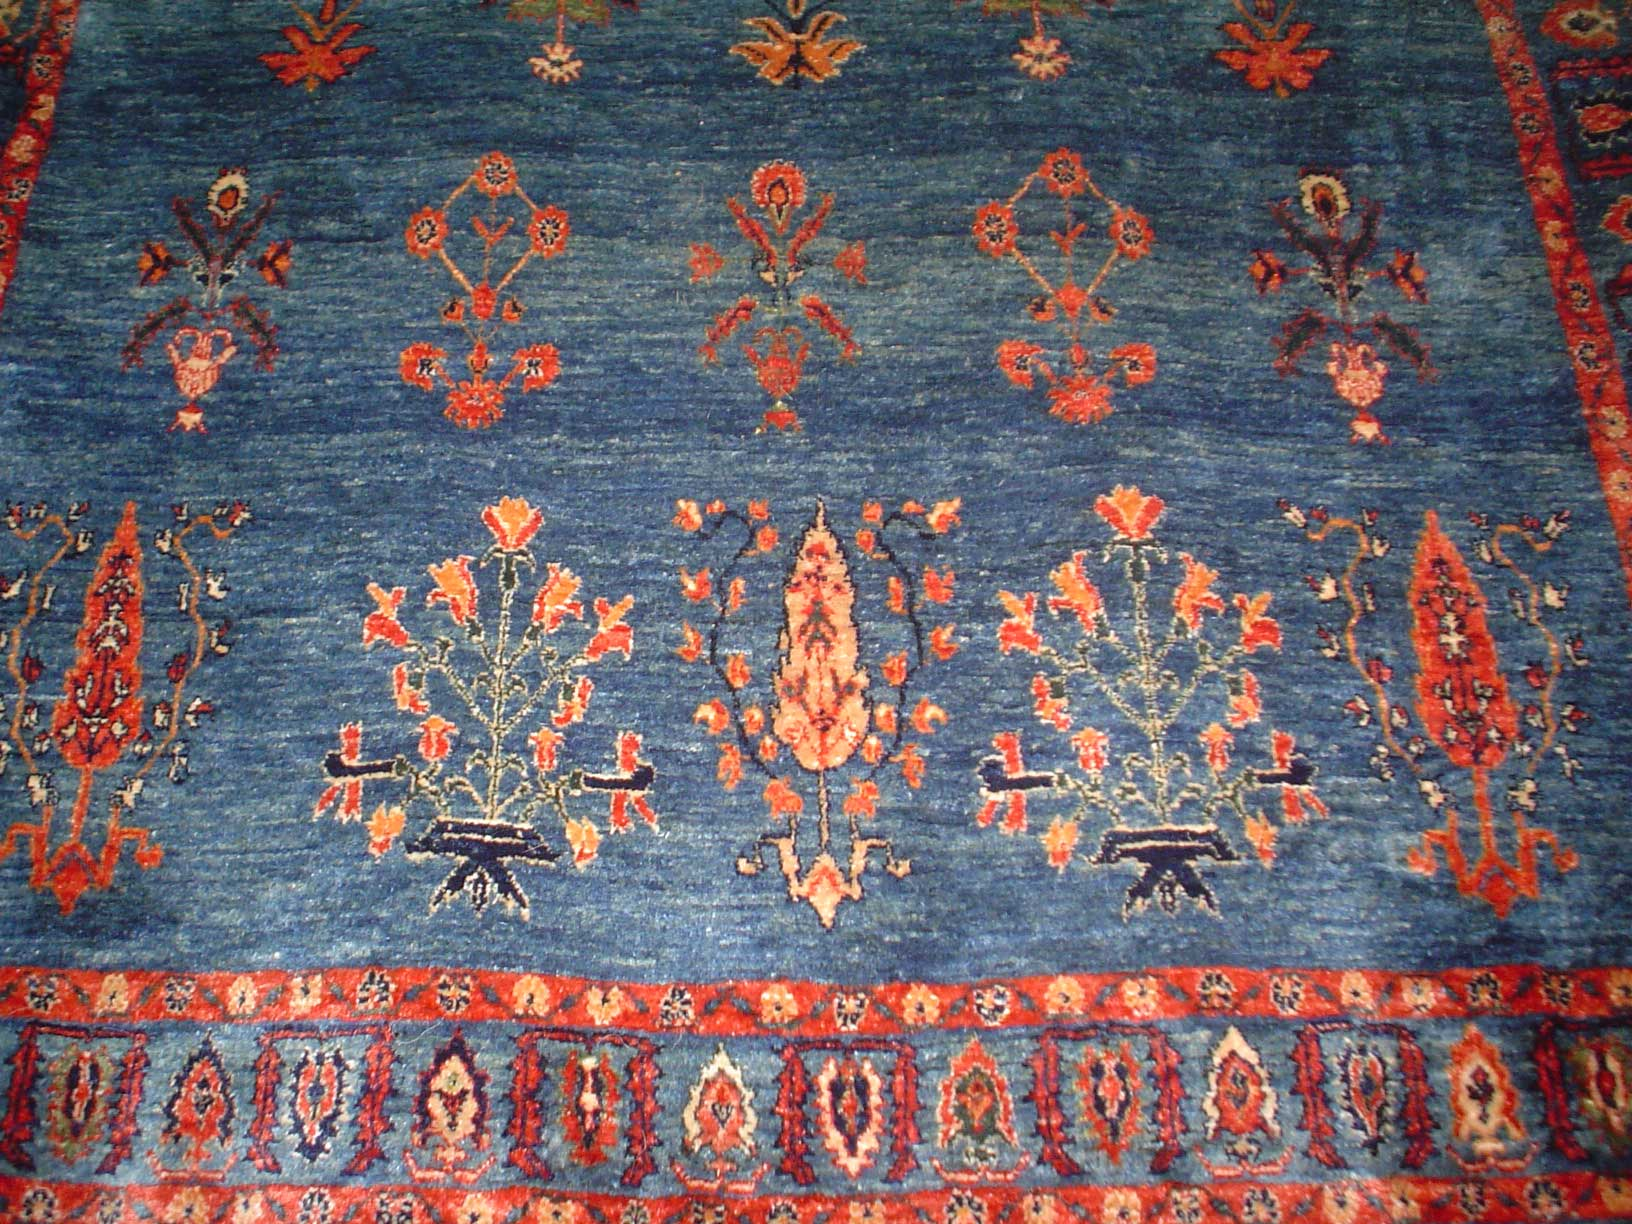 5 x 7 Qashqai. Woven in Southern Iran. True blue, Persian tribal rug, in a floral design with a red shadow border.